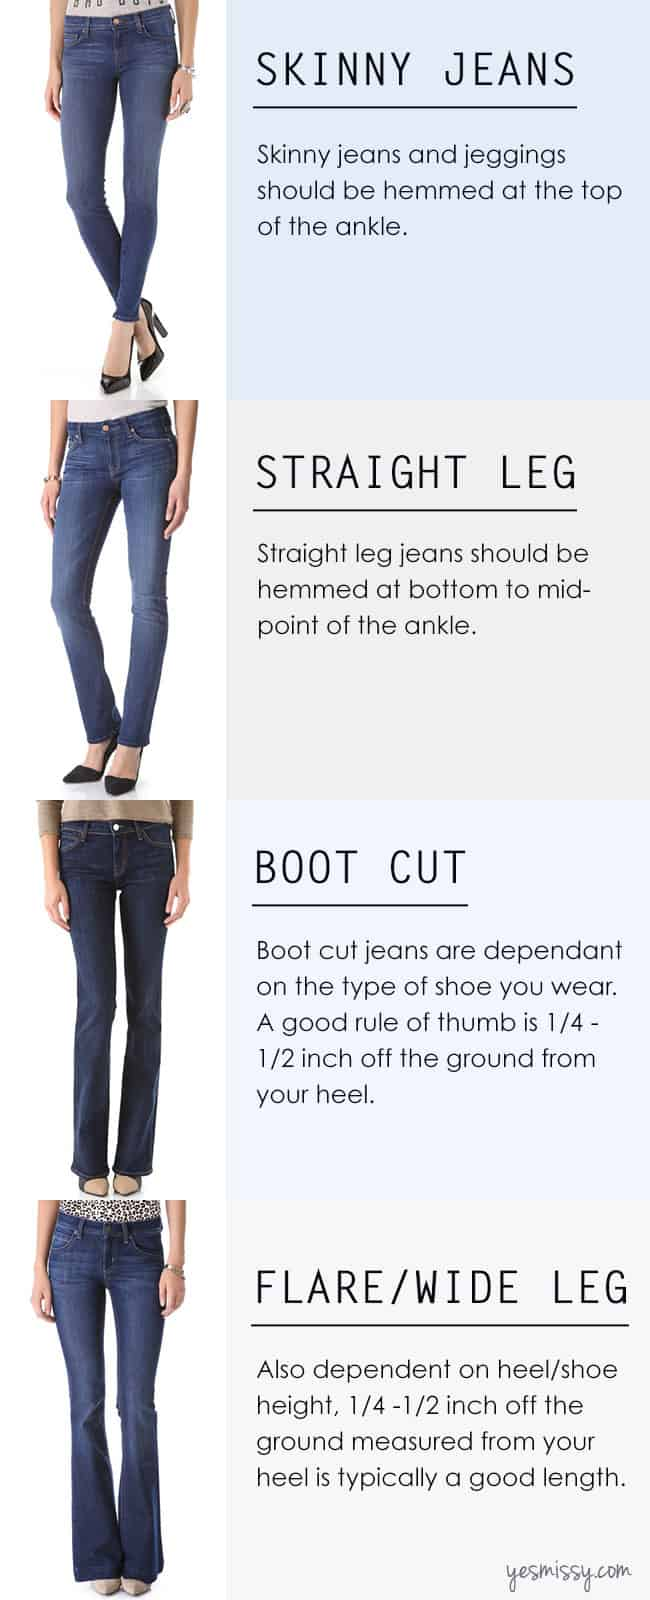 A Complete Guide on How to Hem Jeans - Proper Length Yes Missy